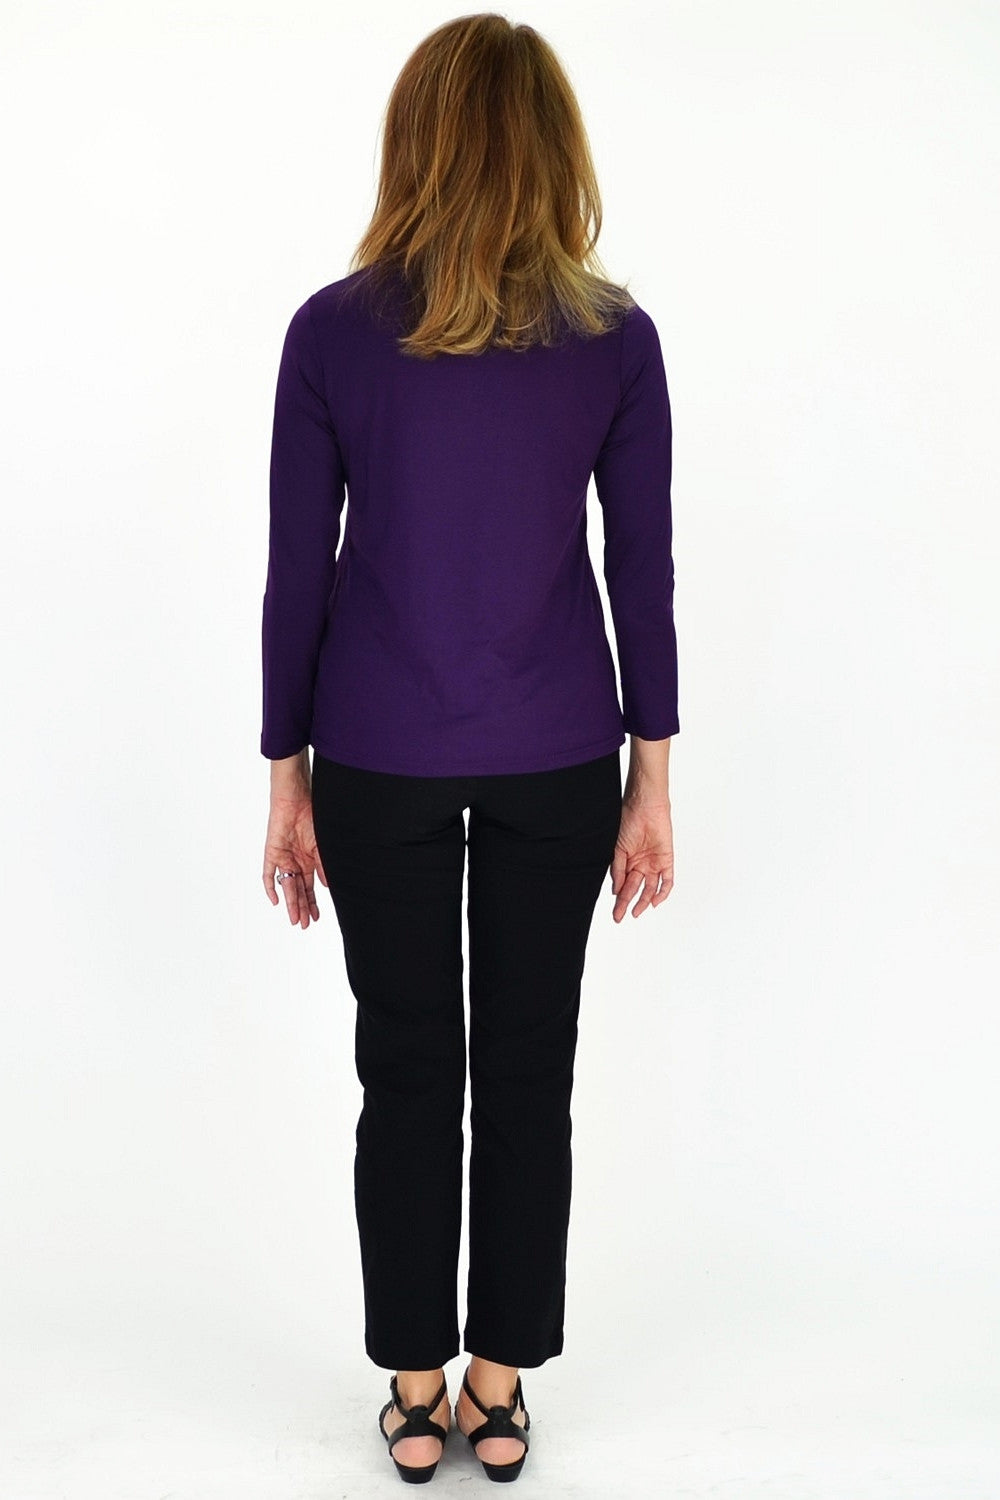 Purple 3/4 Sleeve Basic | I Love Tunics | Tunic Tops | Tunic | Tunic Dresses  | womens clothing online